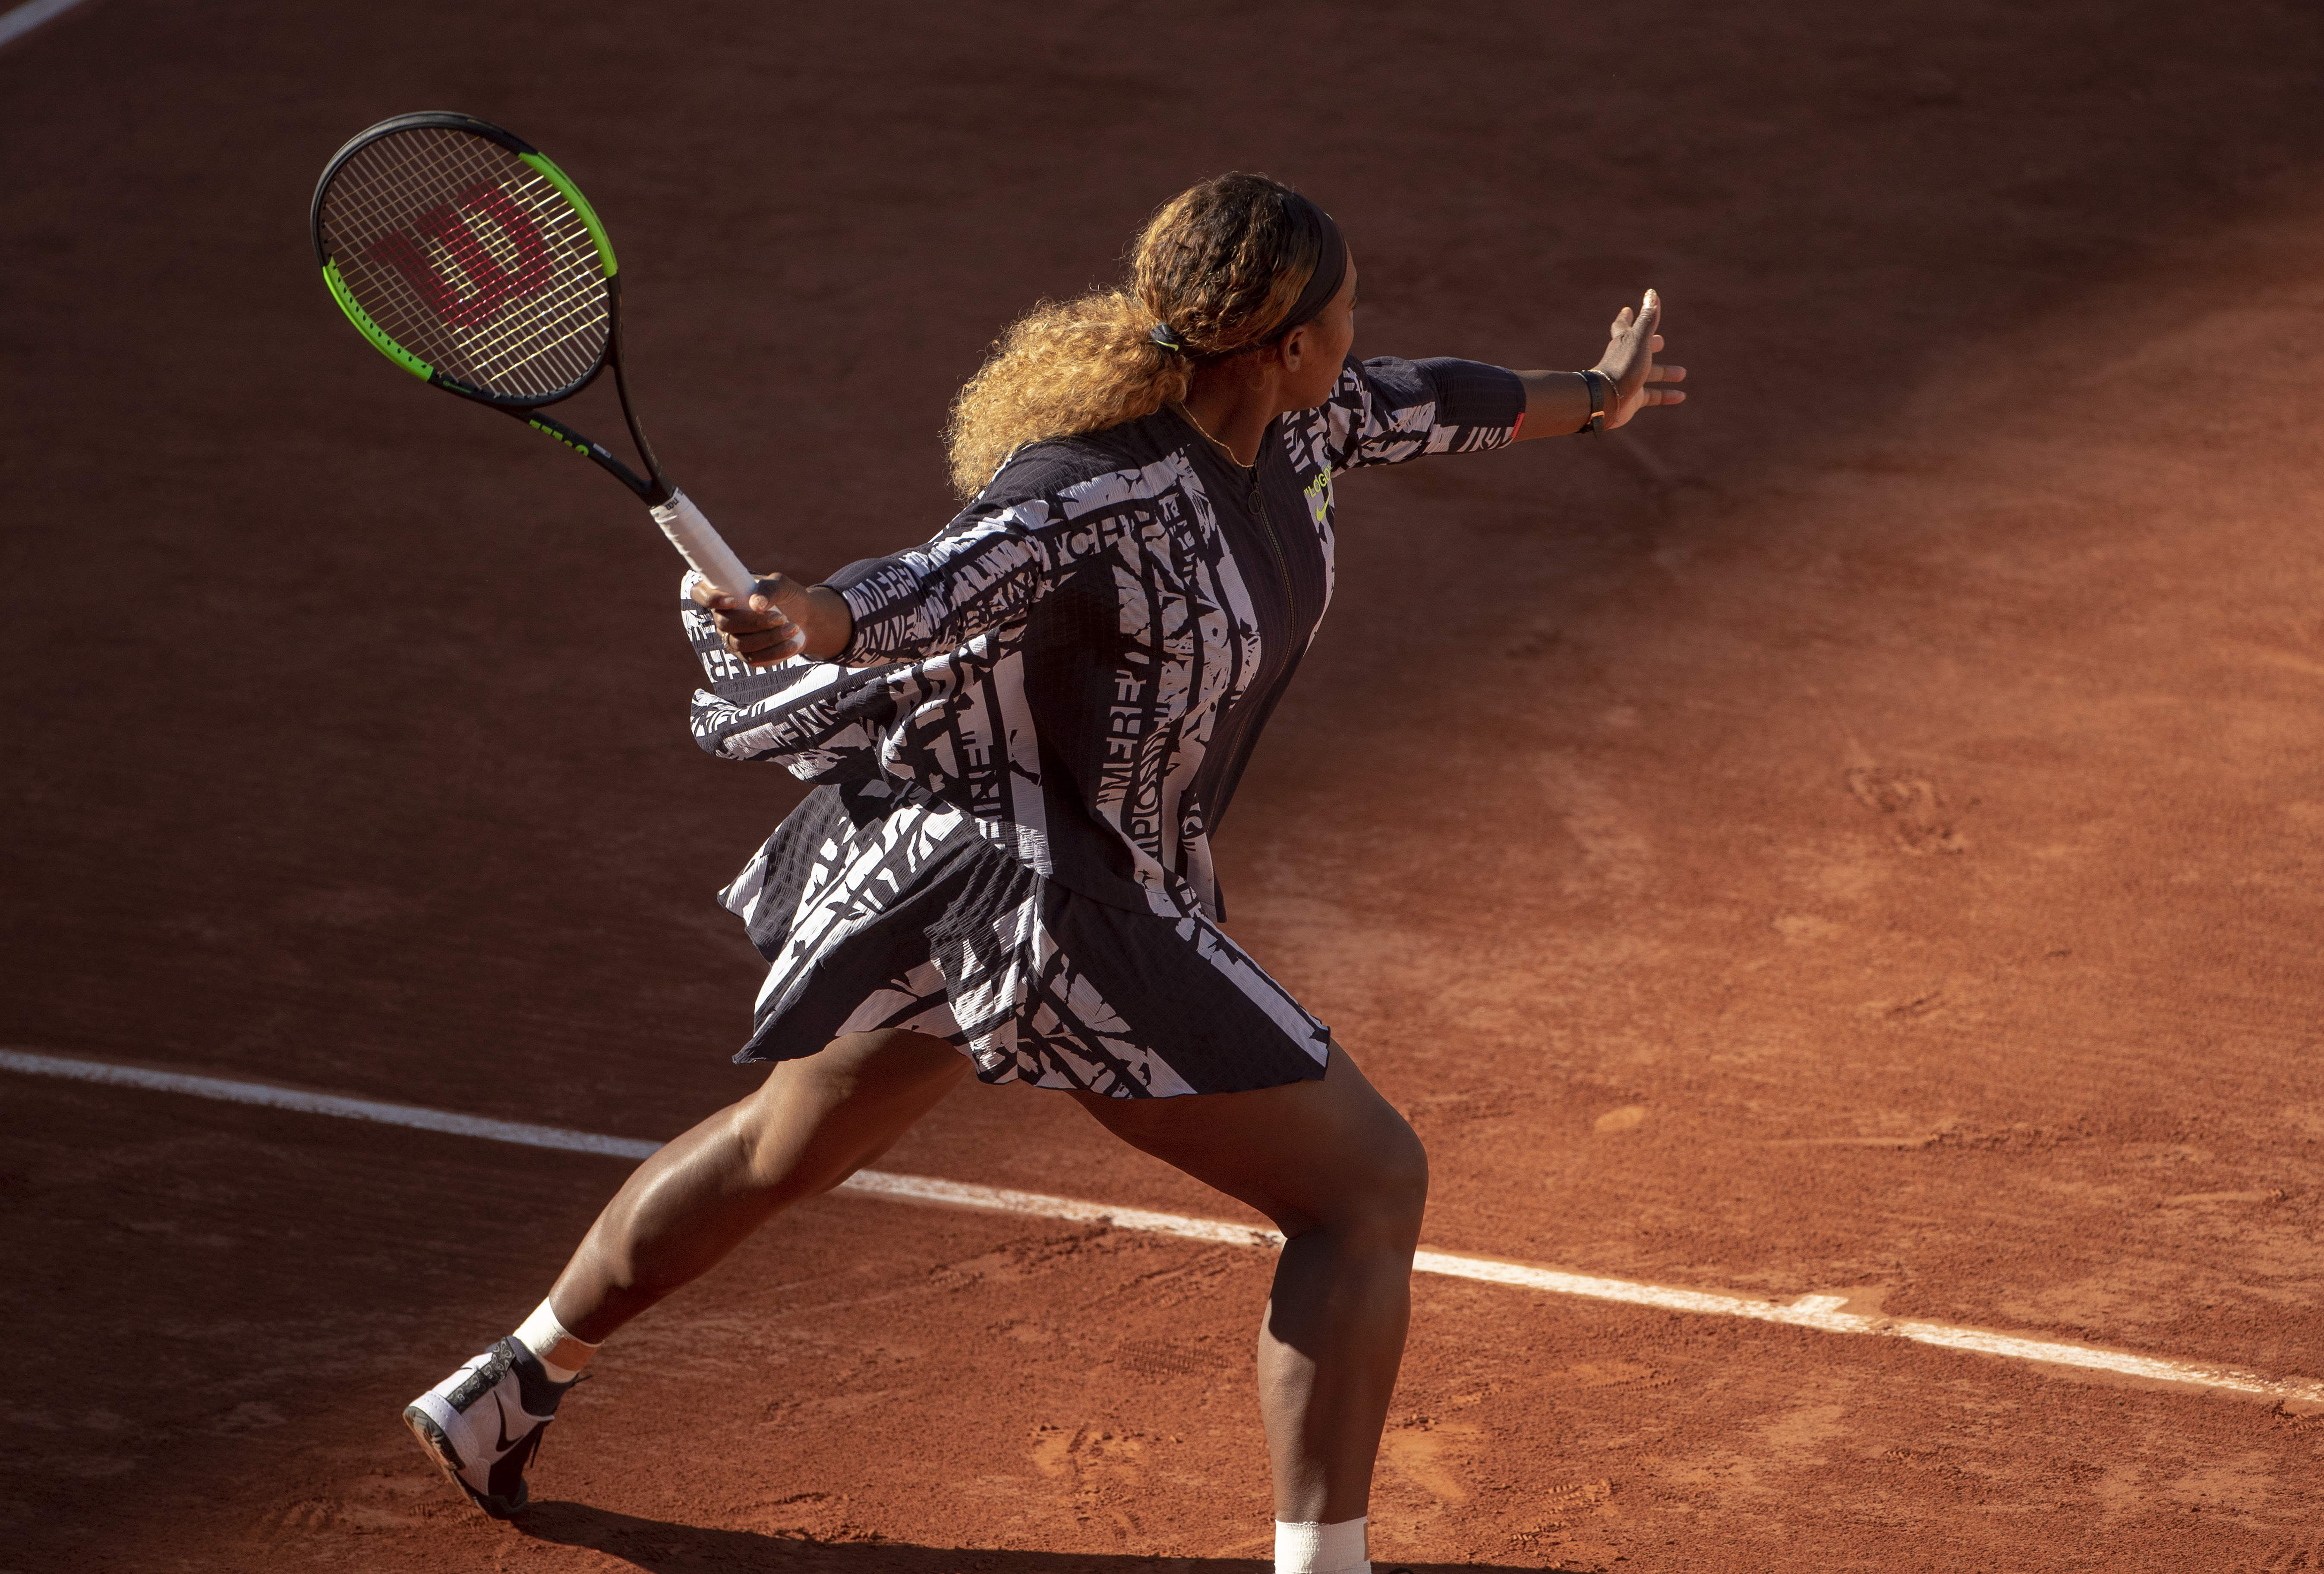 2019 Fashion Favorites: The Top 5 most memorable on-court looks of the season